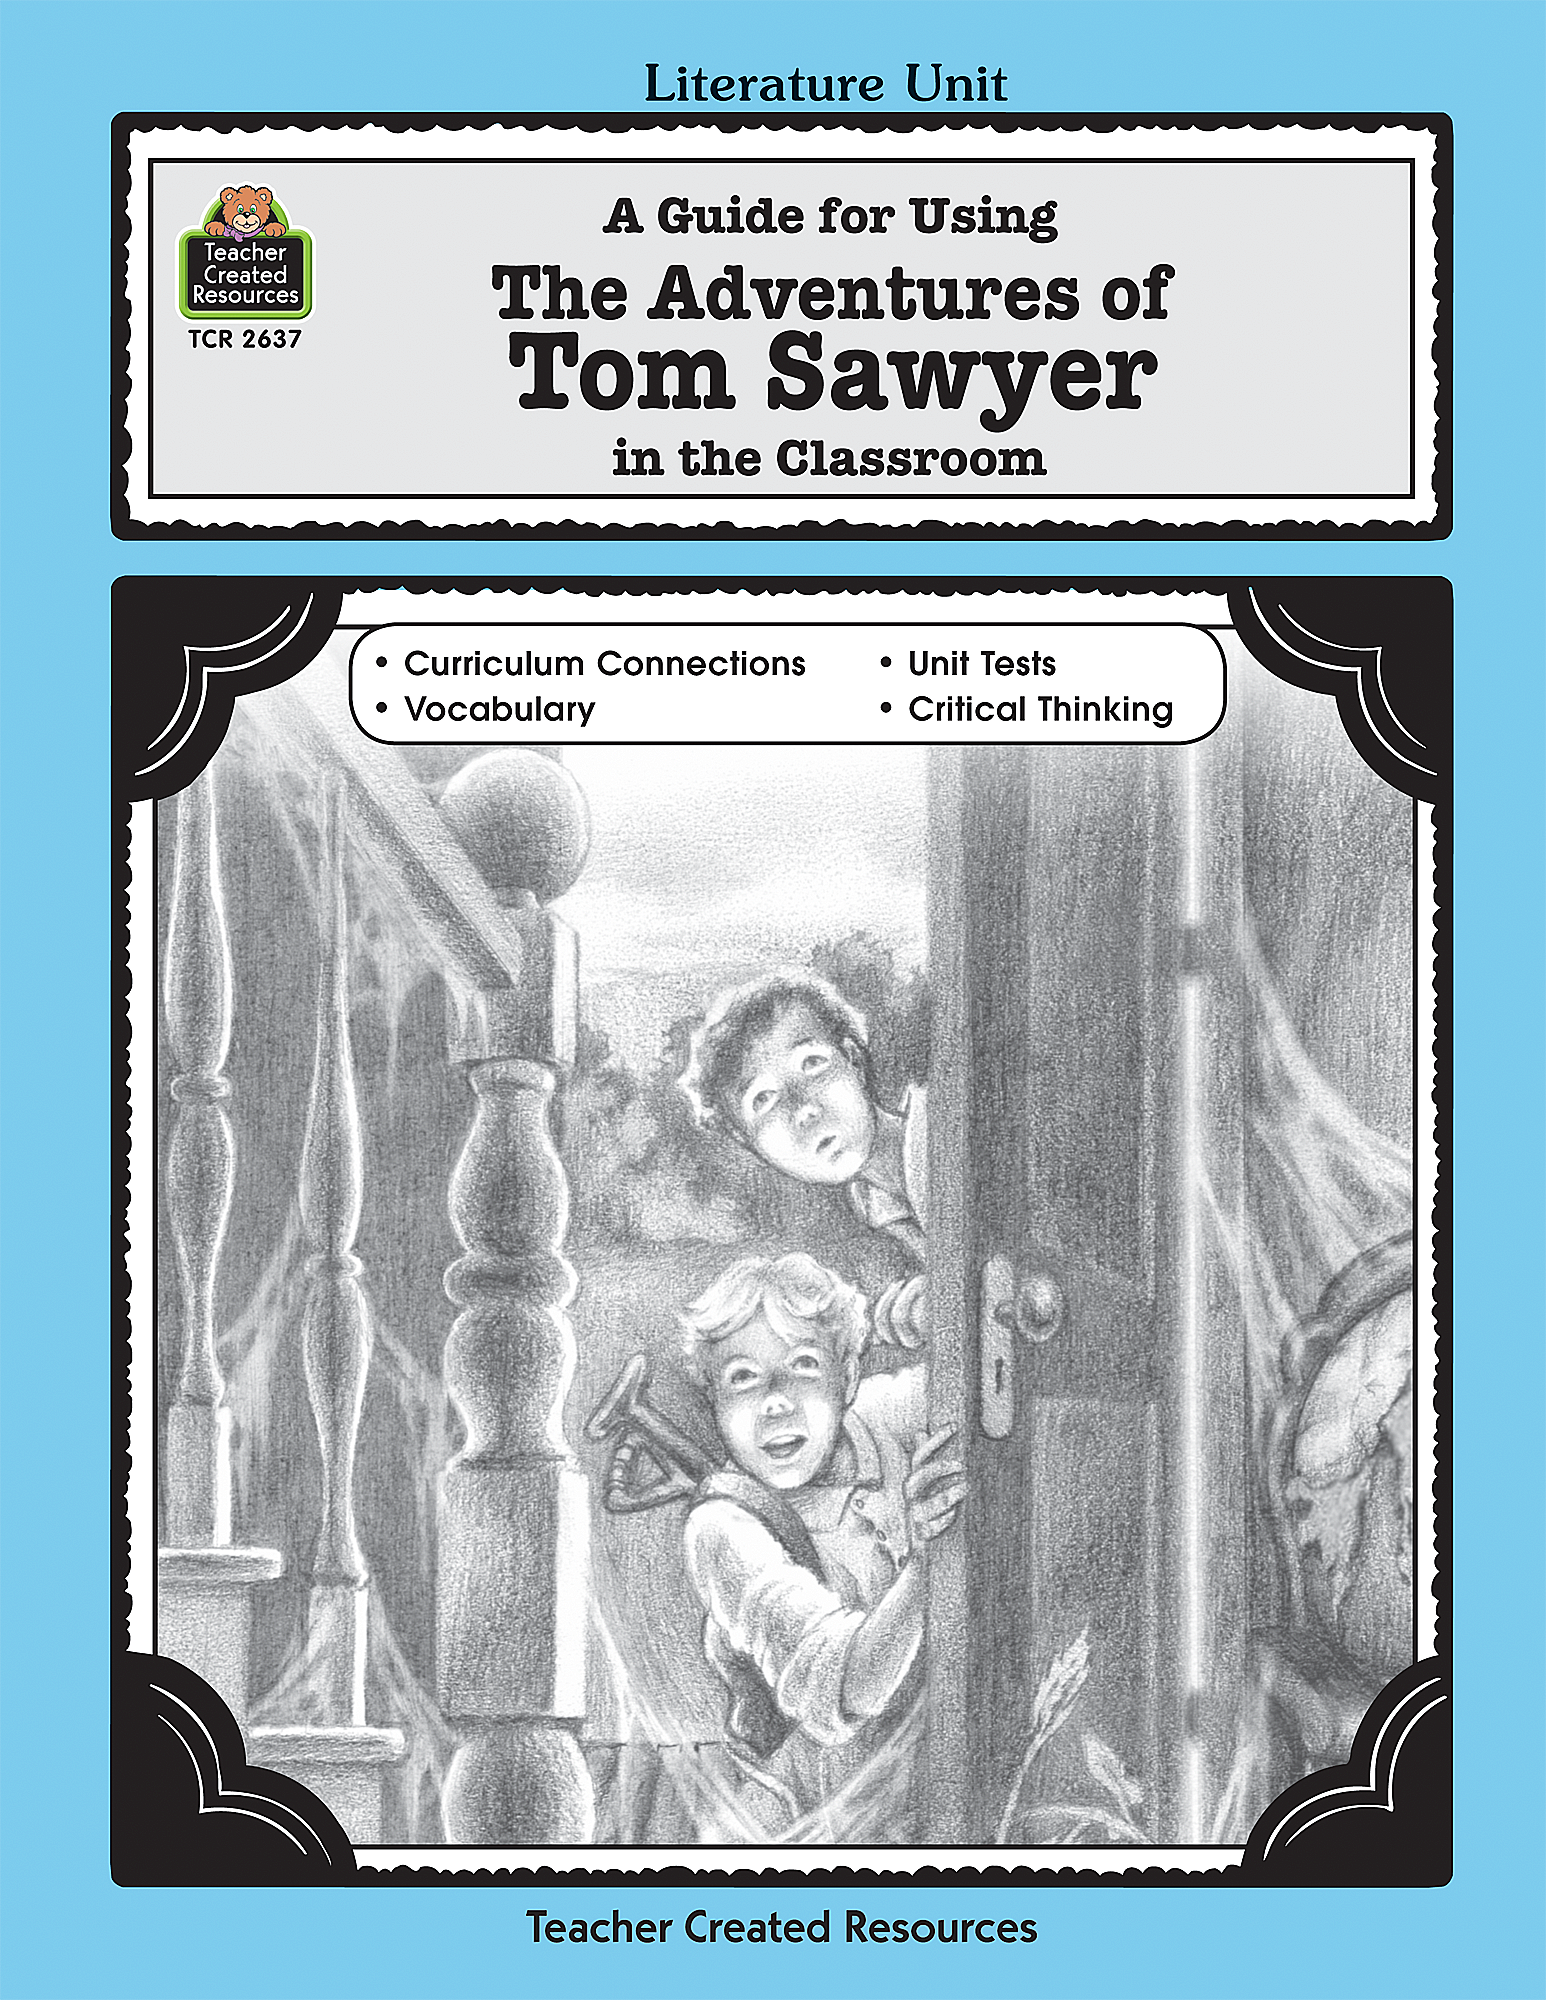 the adventures of tom sawyer research In the adventures of tom sawyer by mark twain many characters change a lot one of the characters who changed a lot is huckleberry finn the son of the town drunkard huckleberry finn changed is a colossally dynamic character in the adventure of tom sawyer.